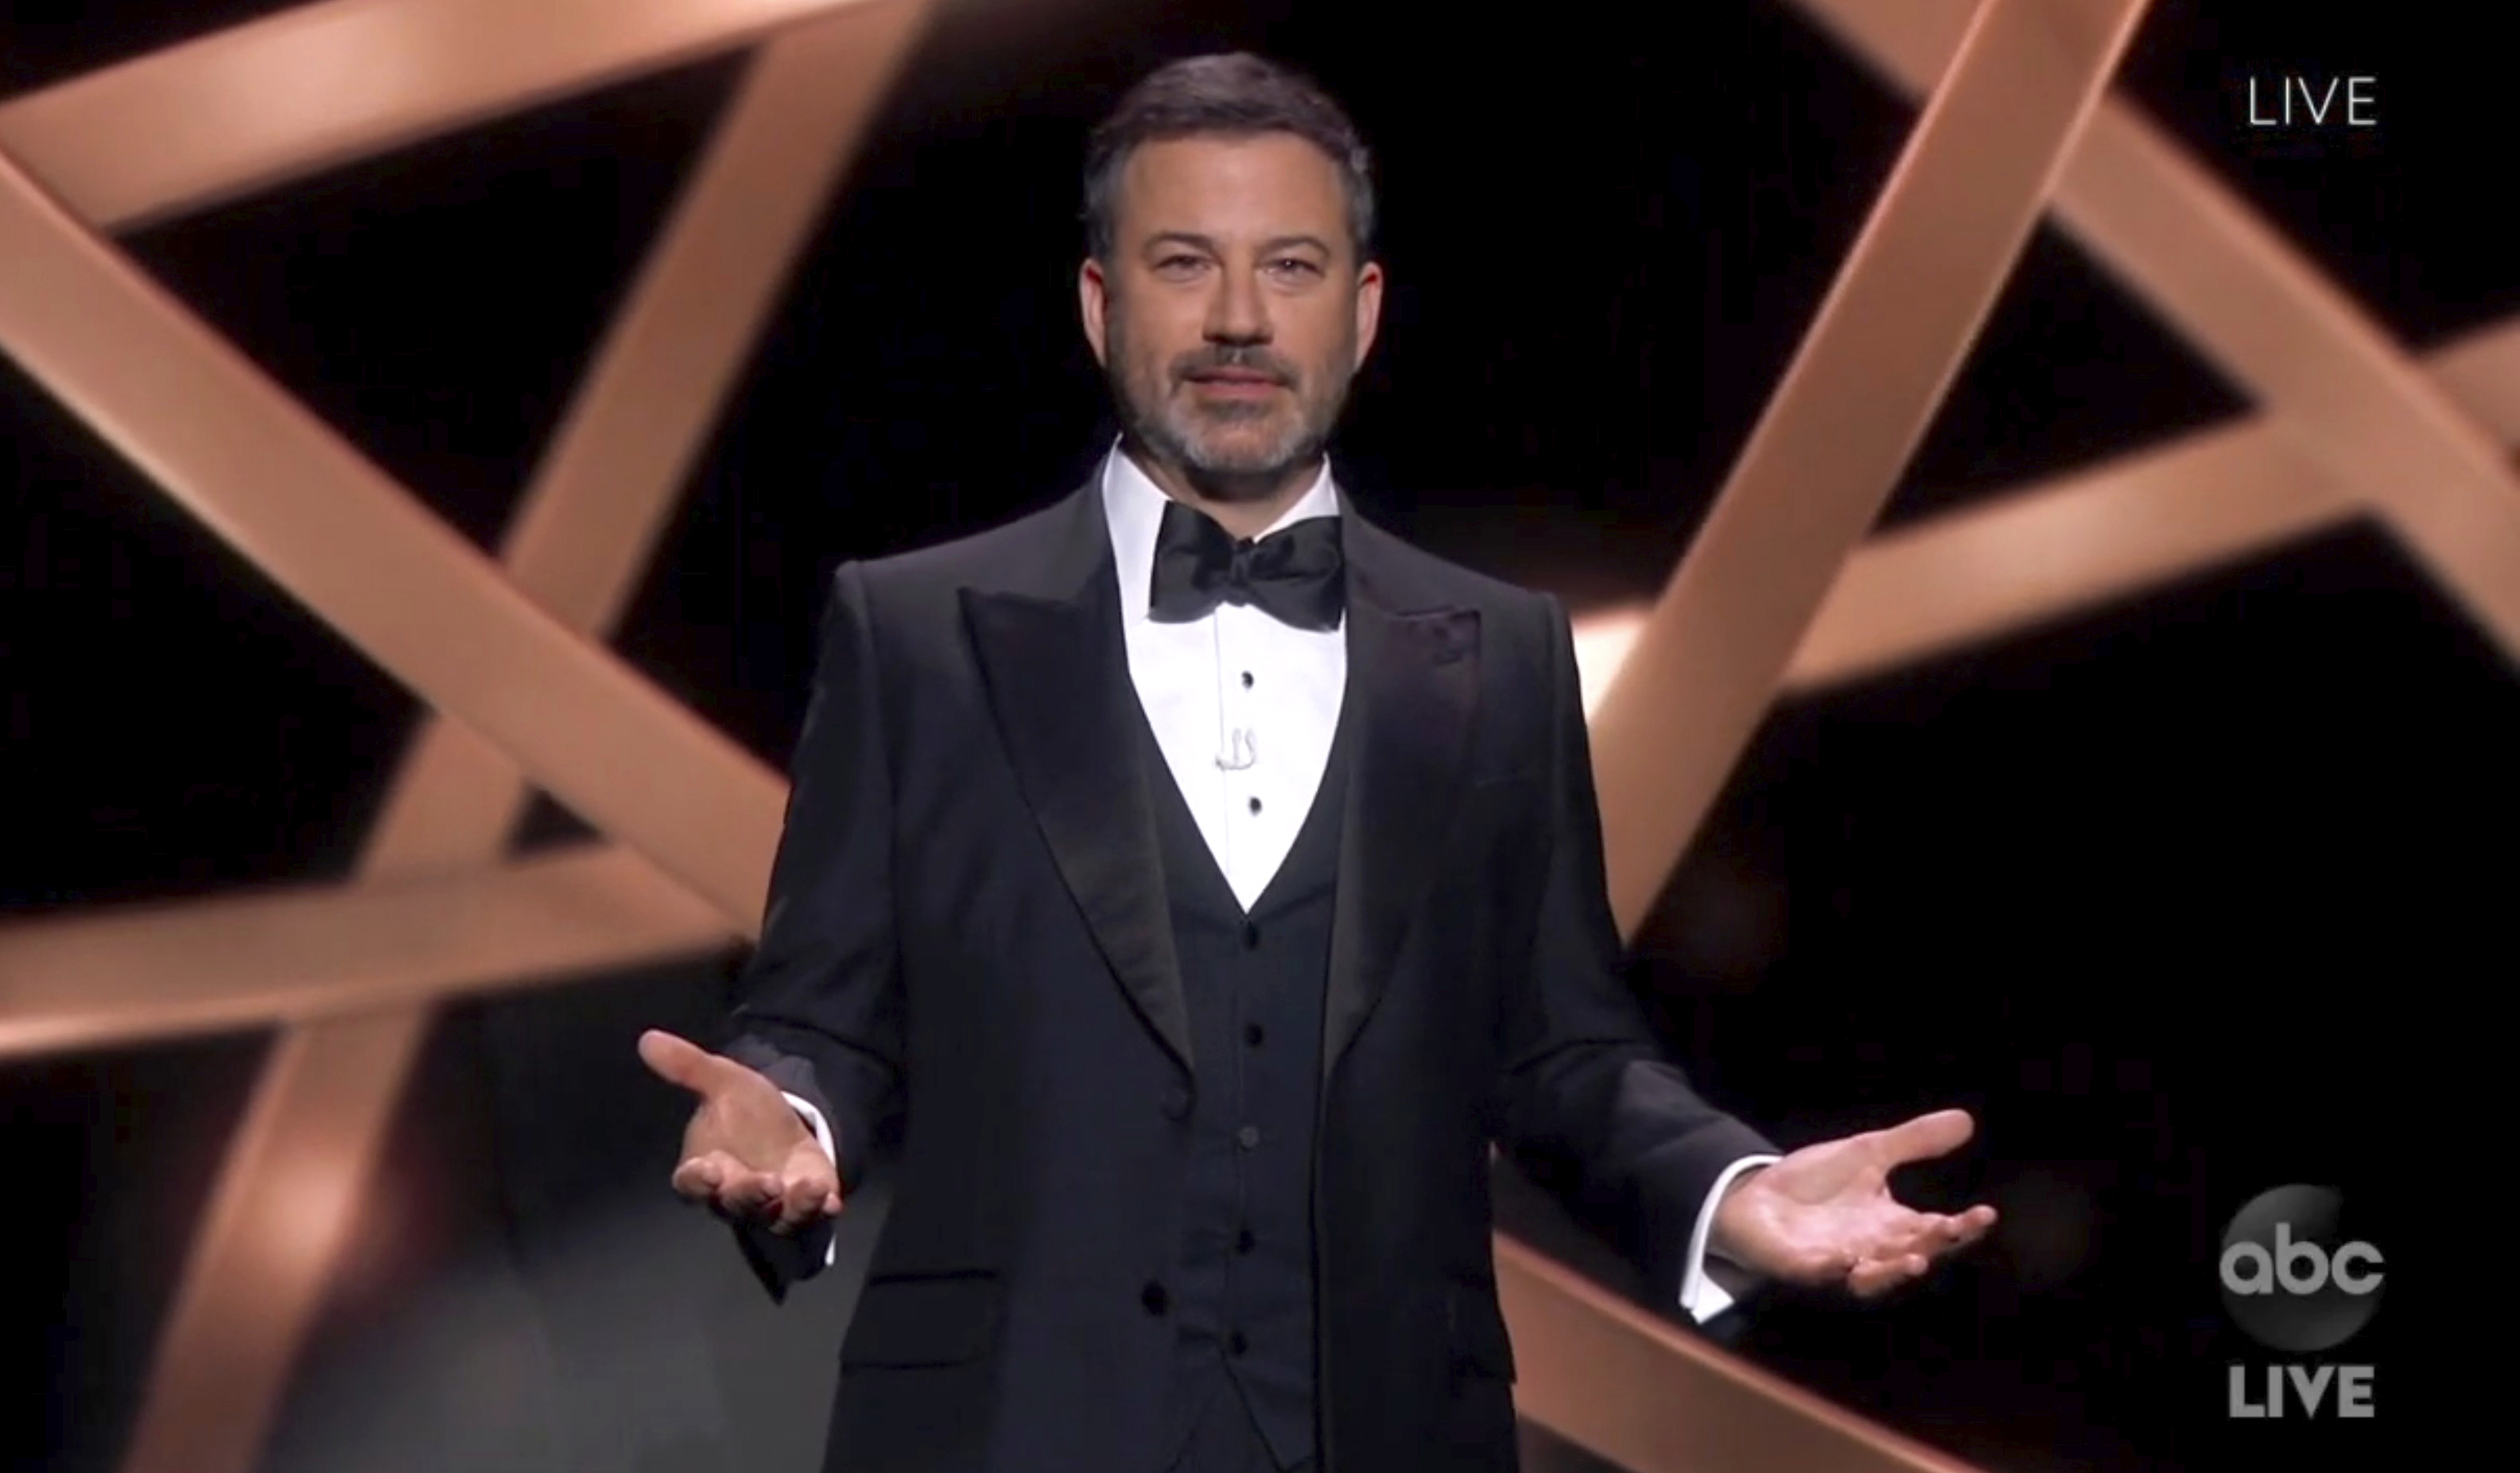 Jimmy Kimmel's Emmy Awards telecast plummets to record low ratings – Fox News